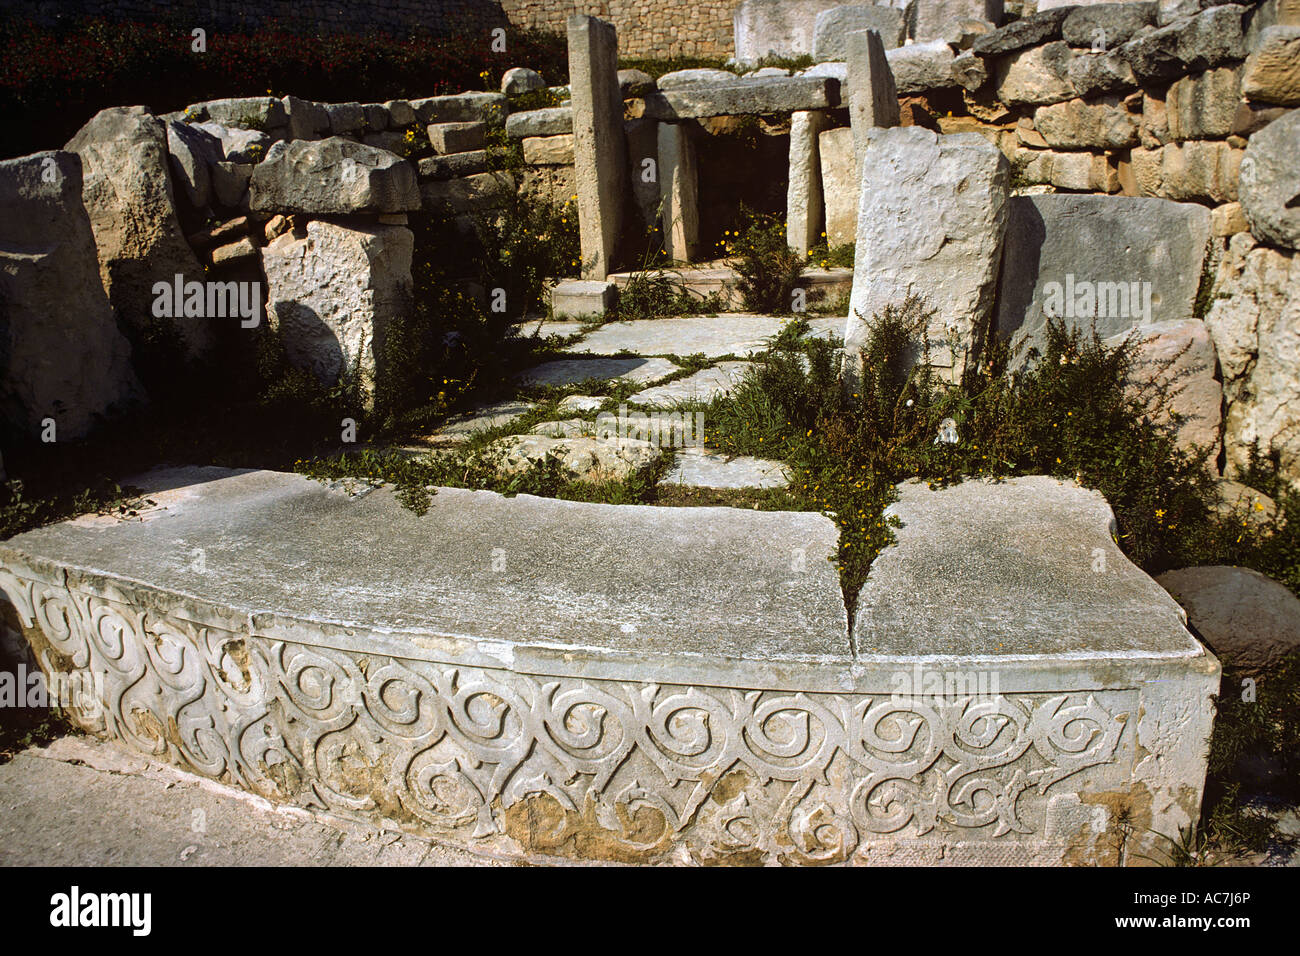 Carved Stone Slab : Carved and decorated stone slab in front of altar within